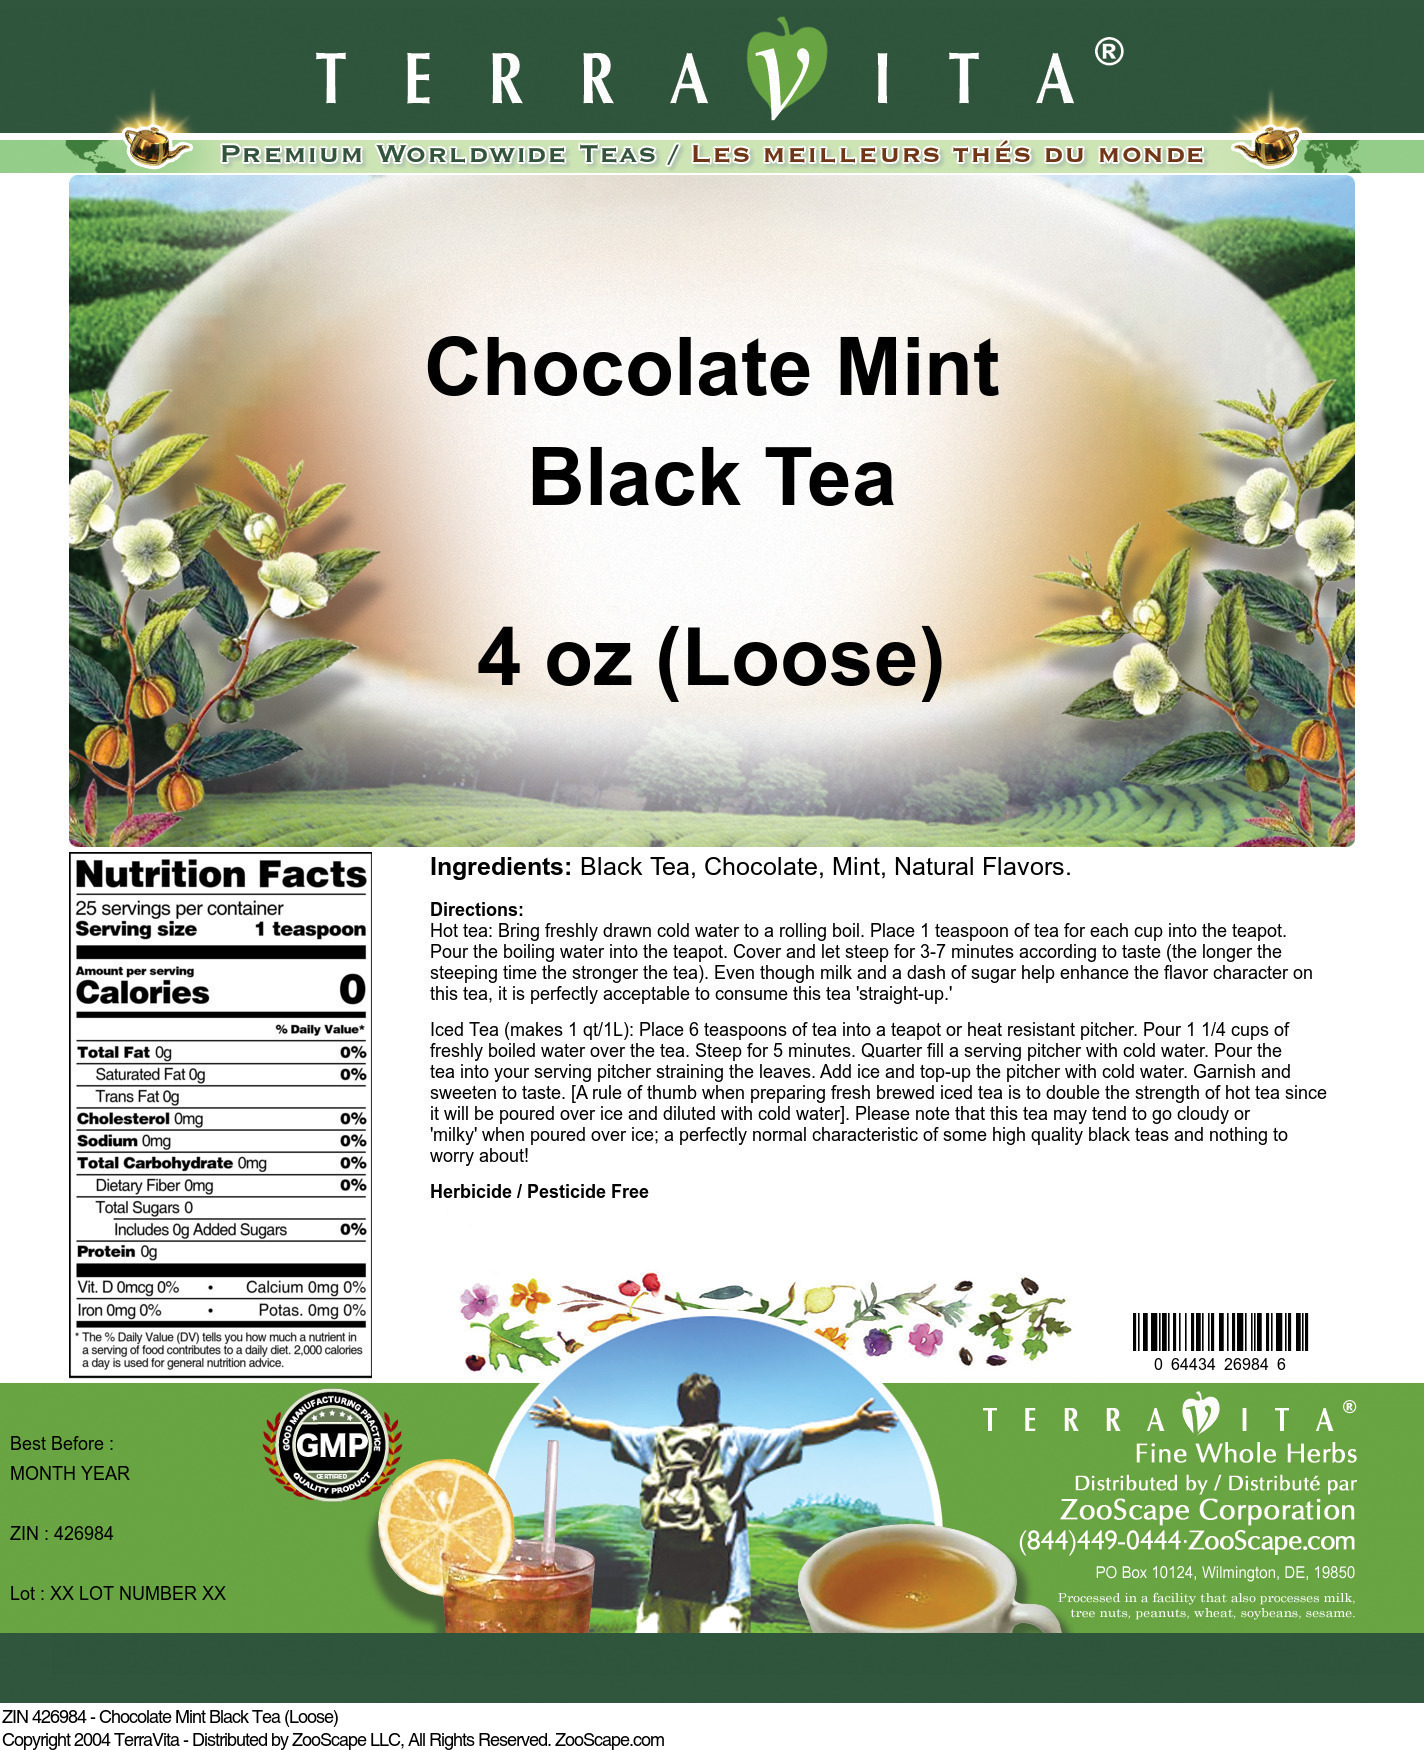 Chocolate Mint Black Tea (Loose) - Label